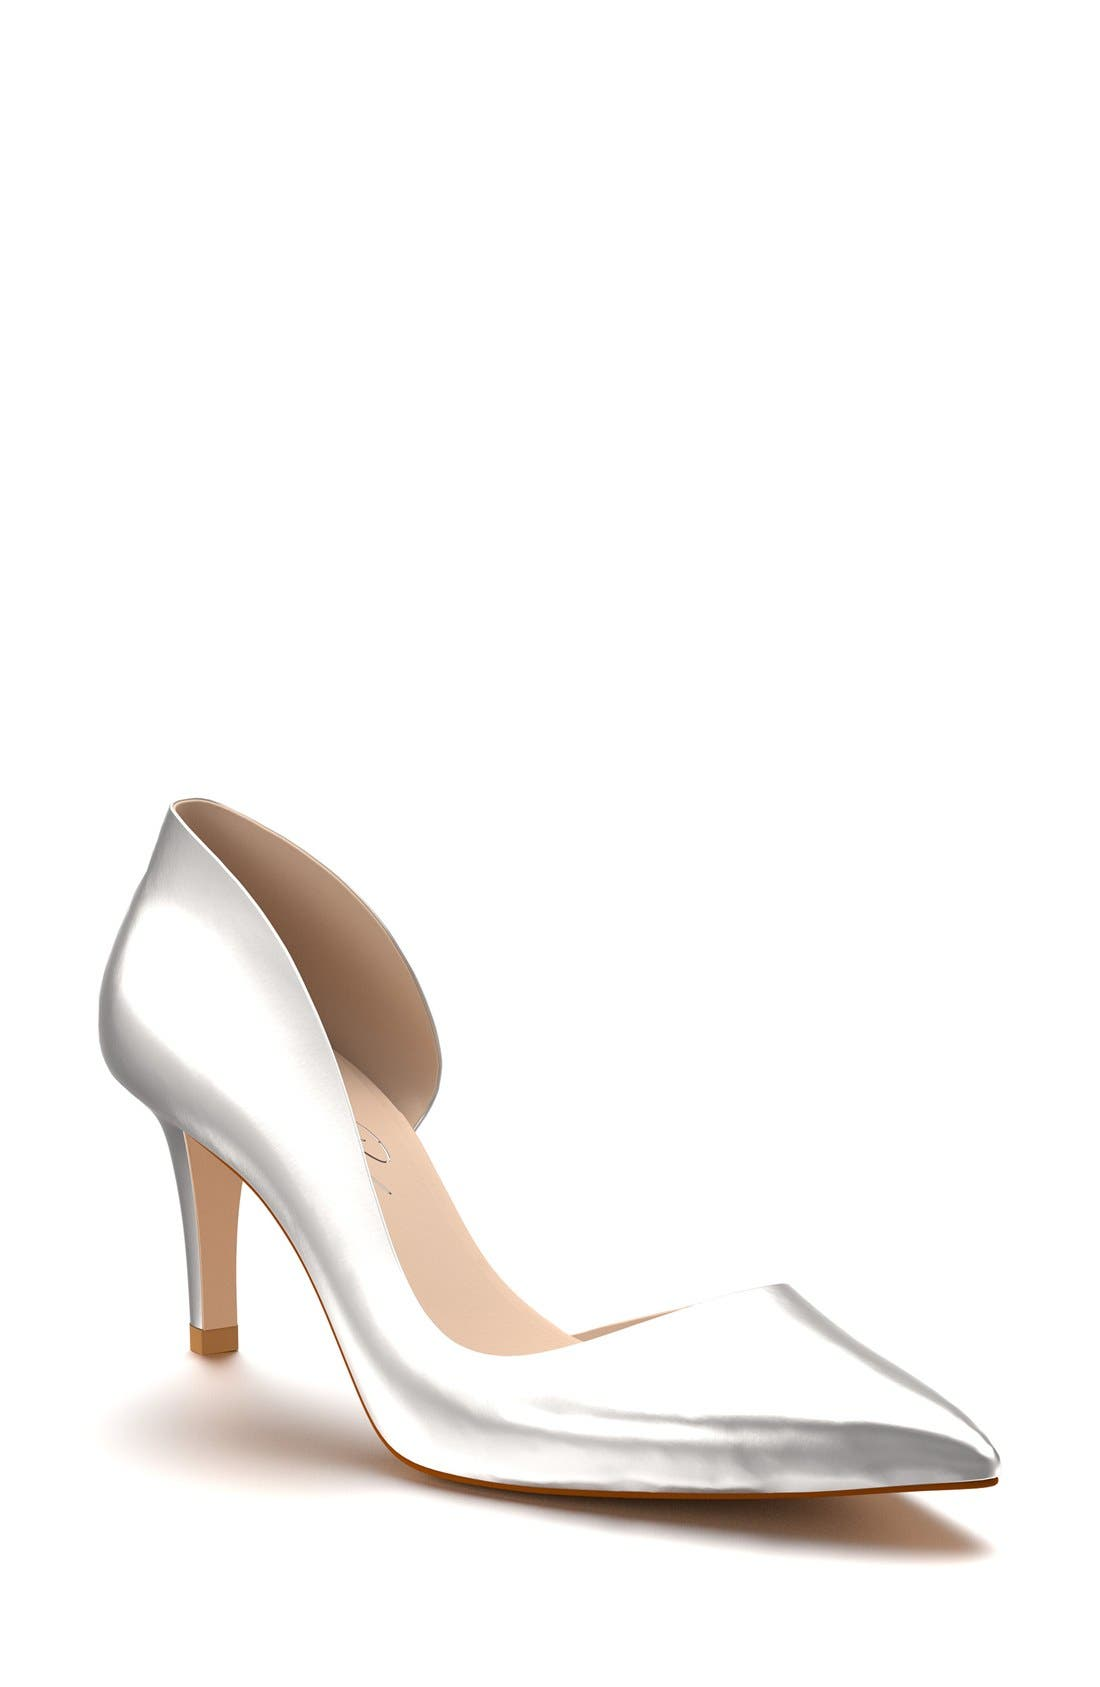 Alternate Image 1 Selected - Shoes of Prey Half d'Orsay Pump (Women)